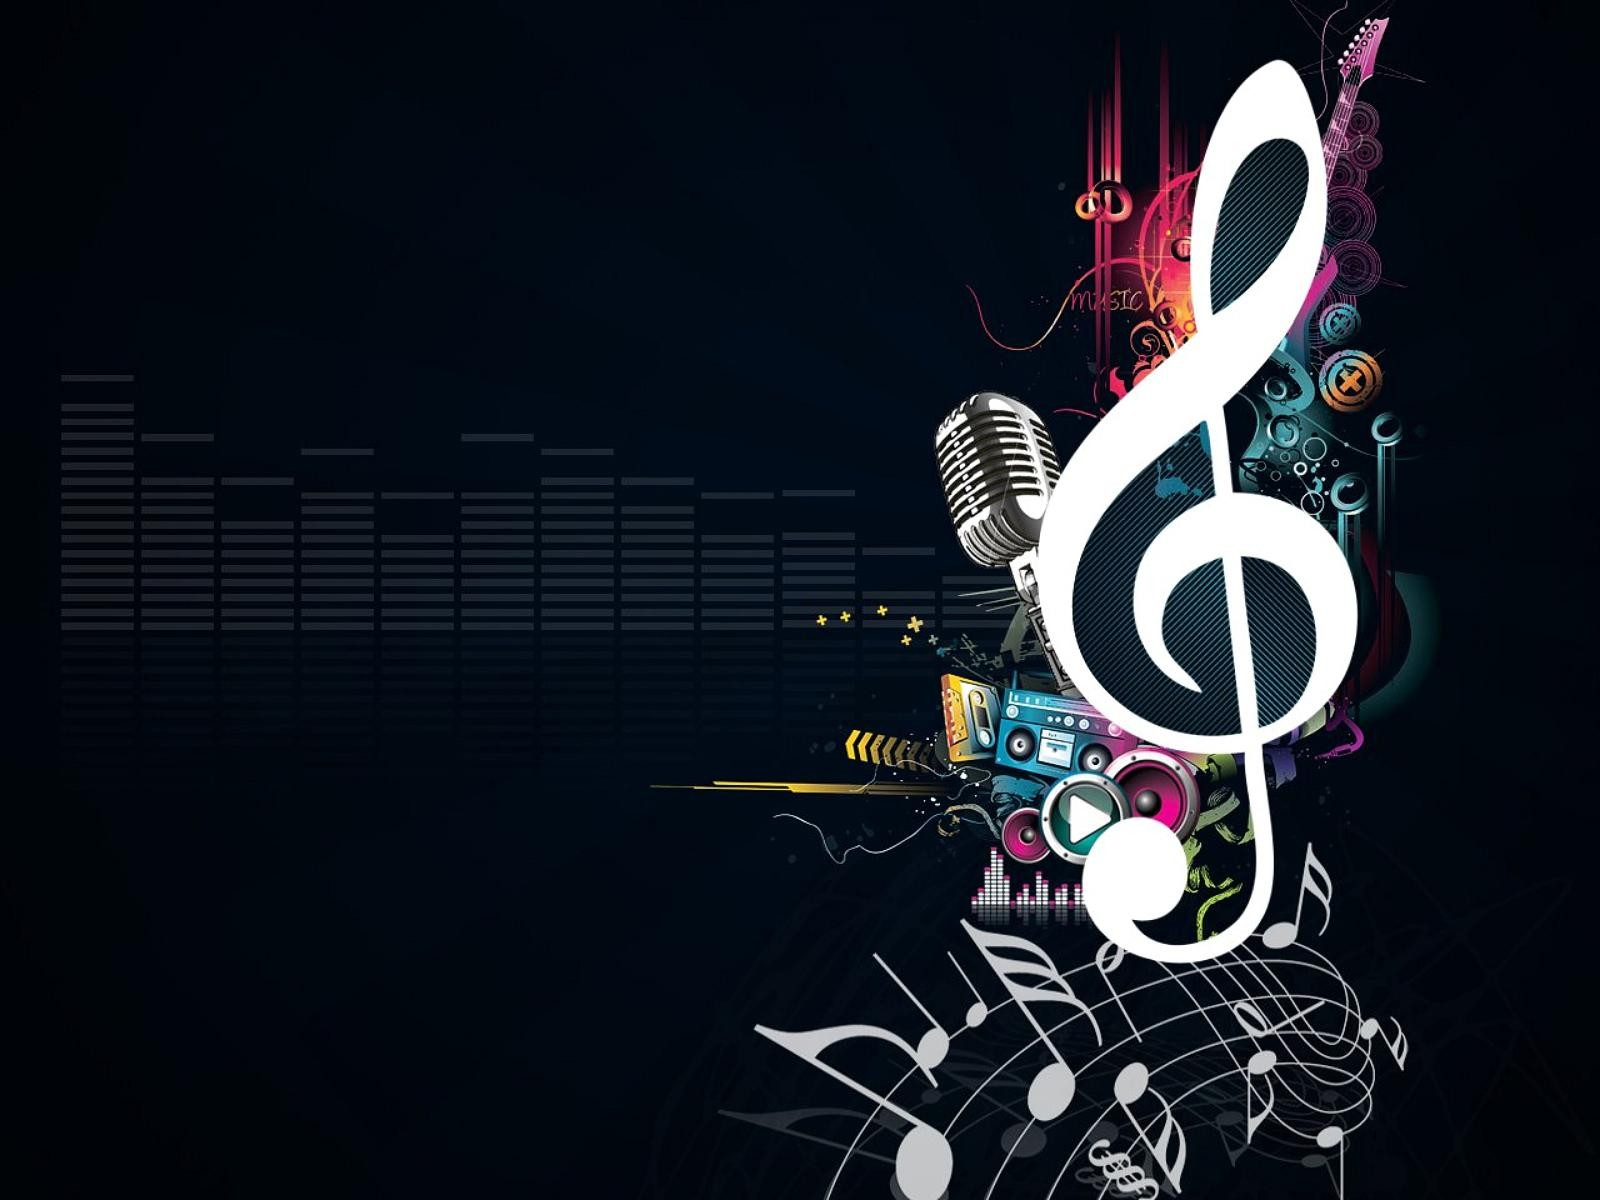 Anime Music and japanese music images music HD wallpaper and